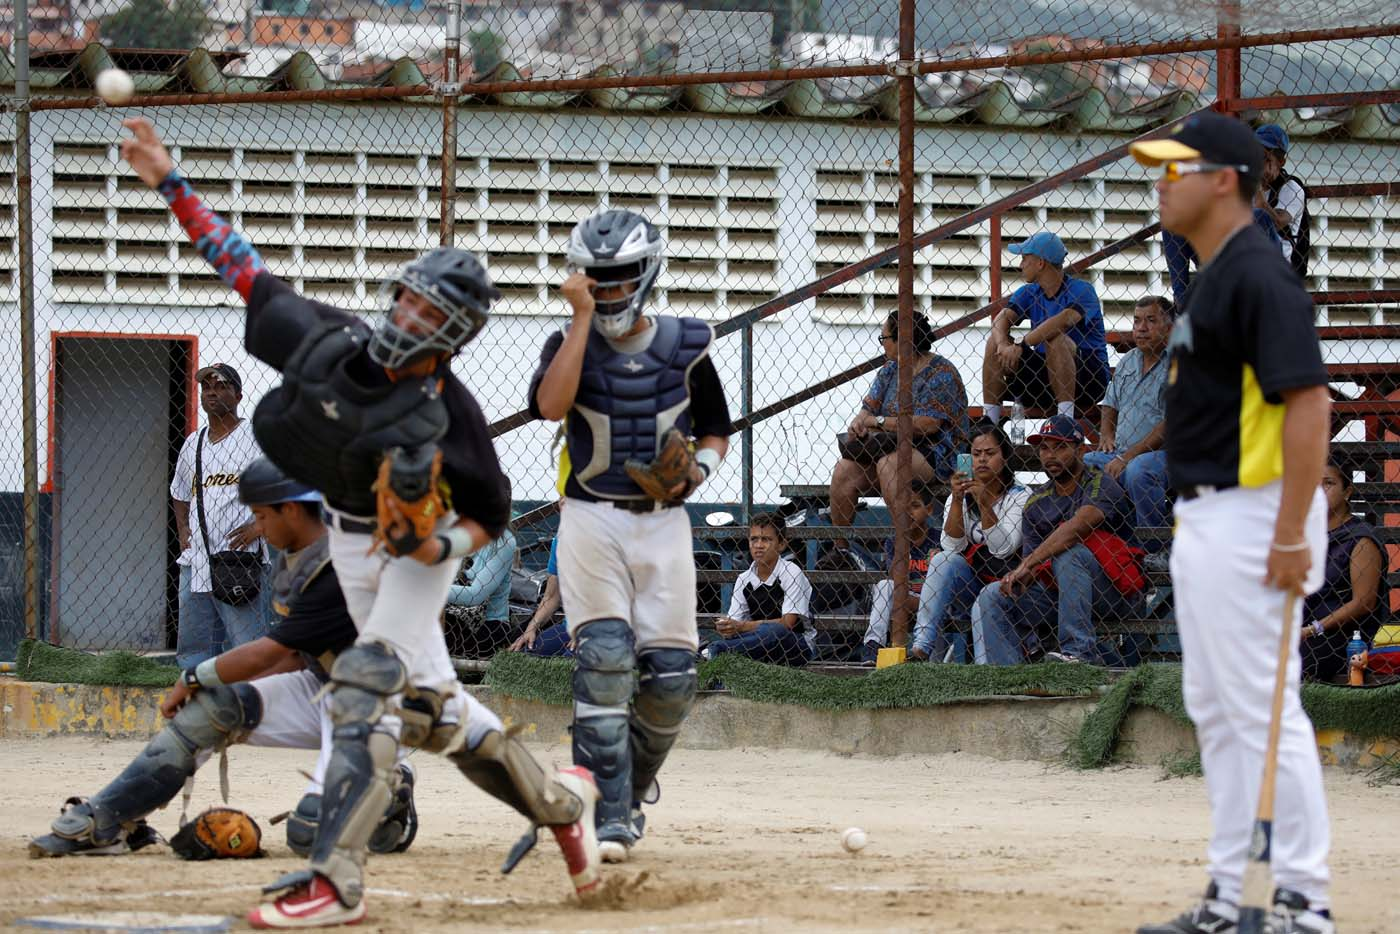 Grey Mejia (C) uses her cellphone to takes pictures to her son Rivaldo Avila (kneeling on L) and the other players, during a baseball showcase in Caracas, Venezuela August 25, 2017. Picture taken August 25, 2017. REUTERS/Carlos Garcia Rawlins